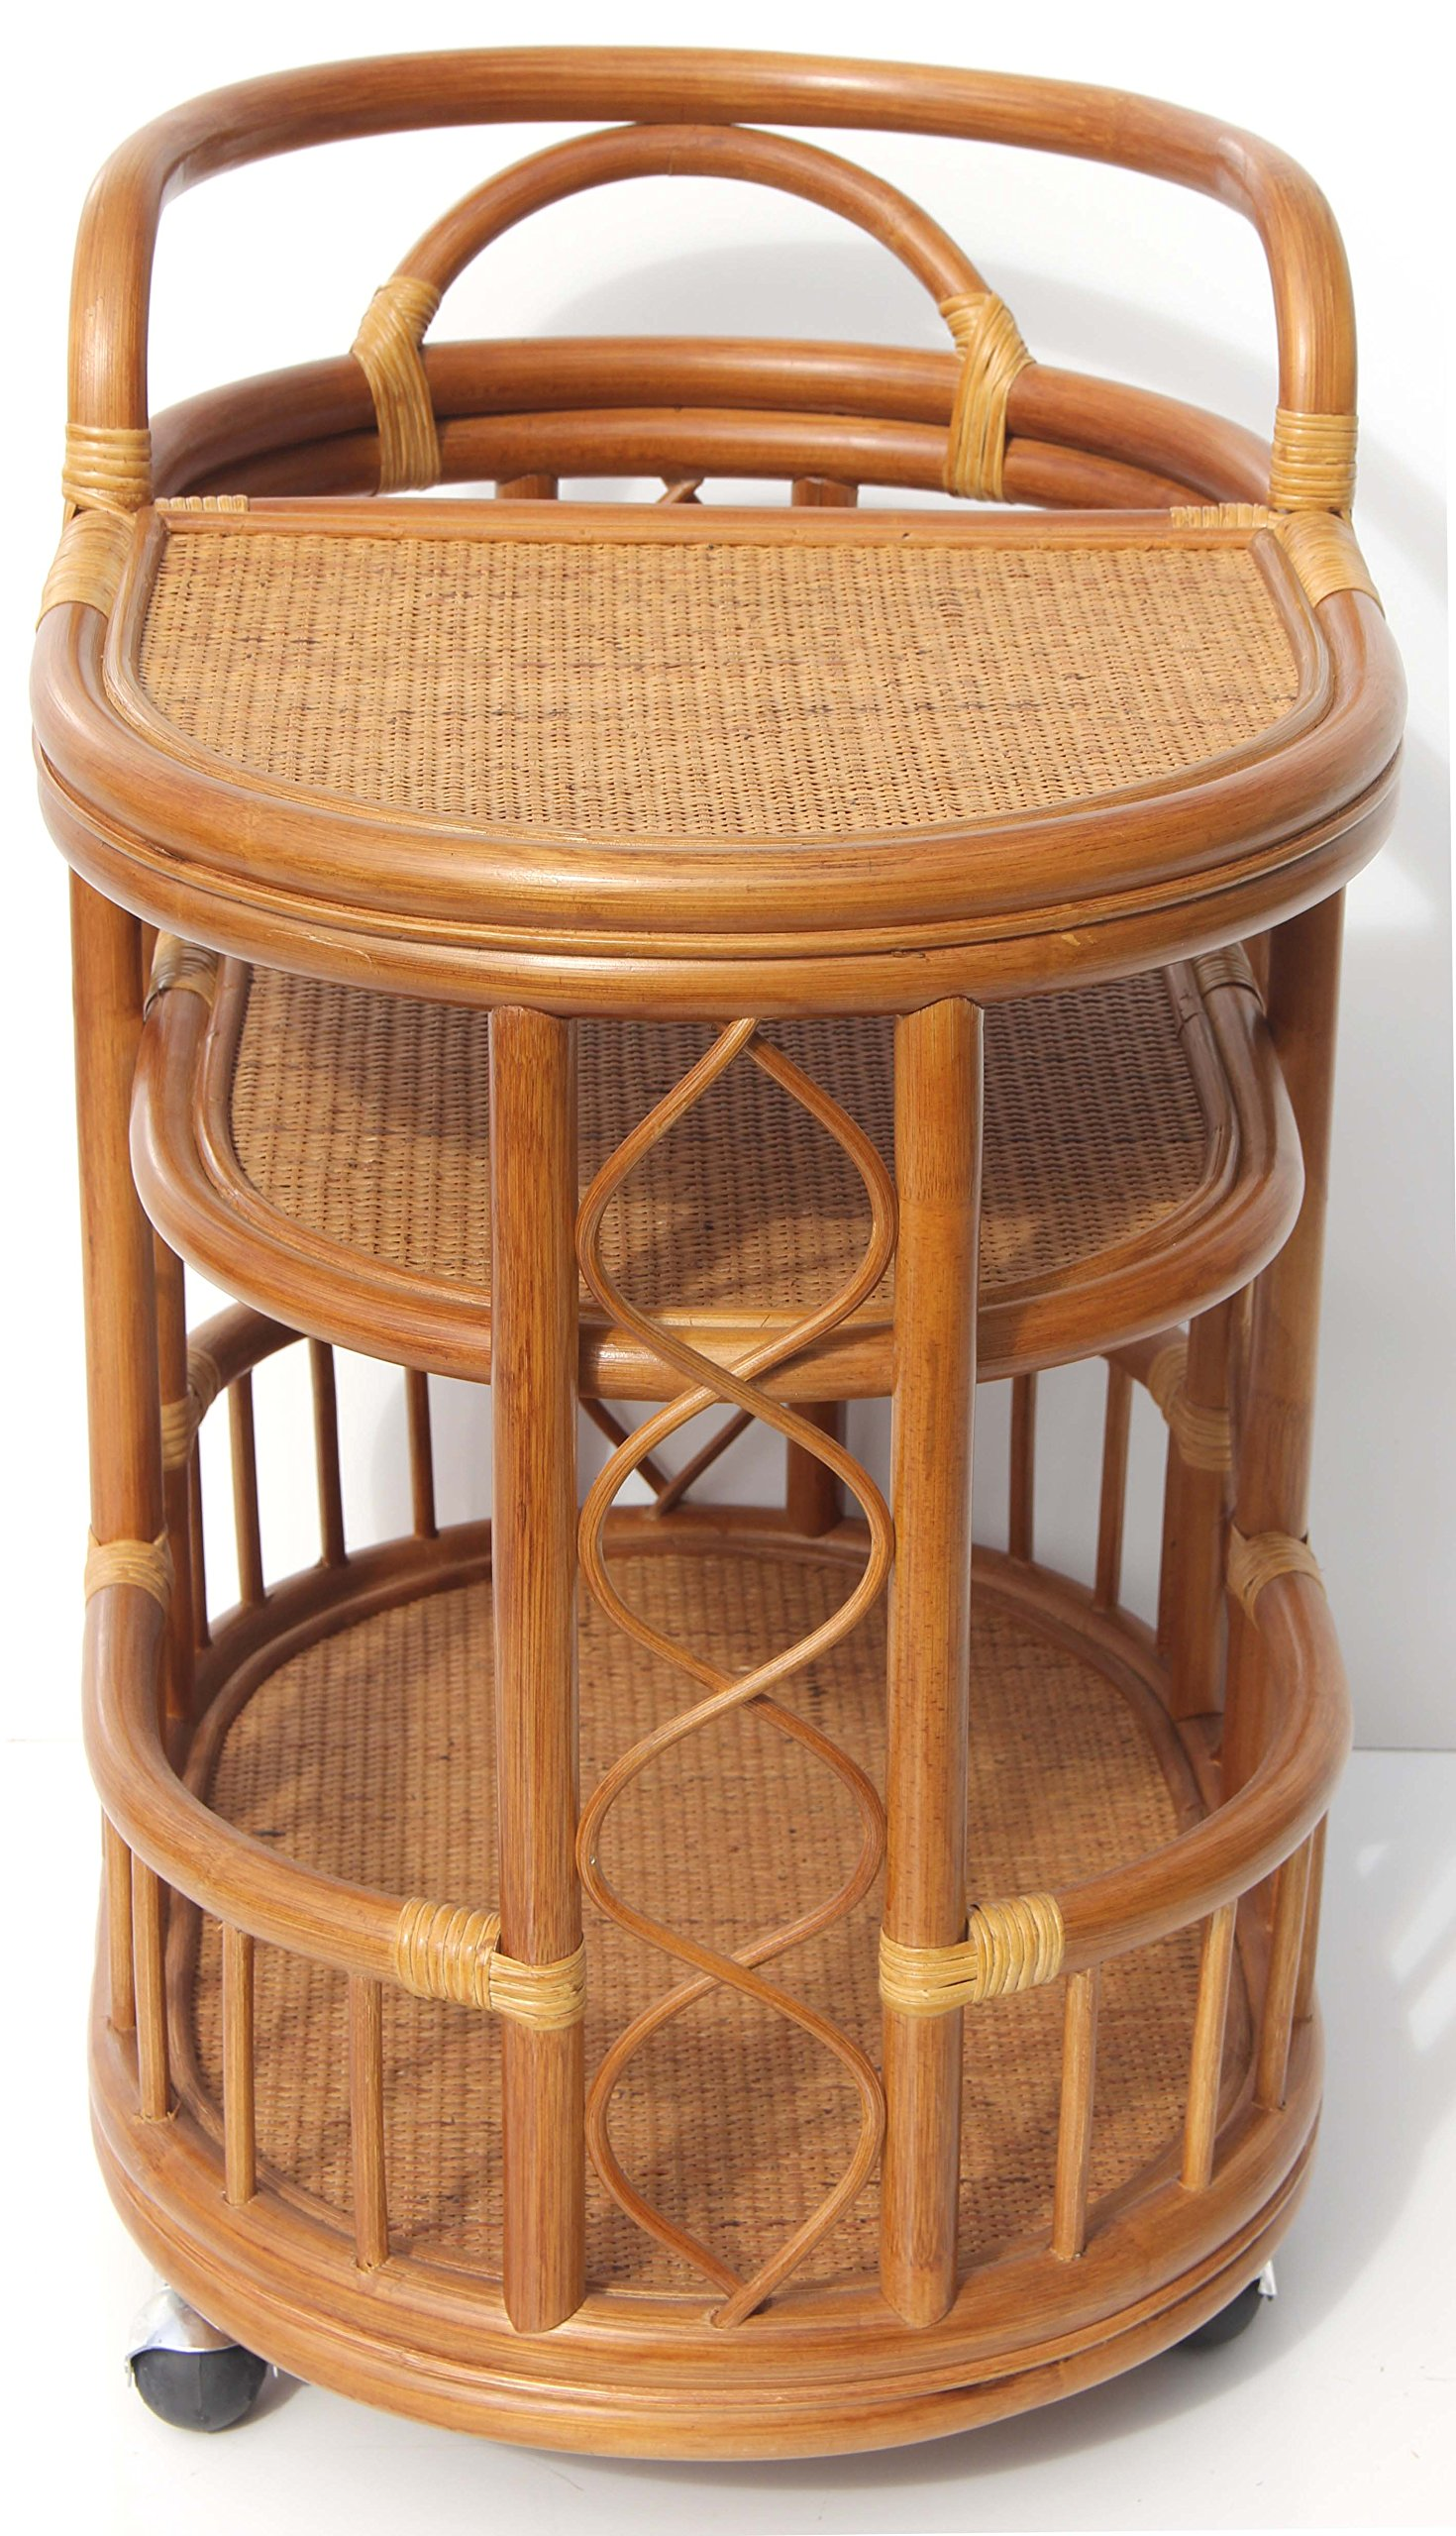 Moving Serving Cart Bar Table Natural Rattan Wicker Exclusive Handmade ECO, Cognac by SunBear Furniture (Image #5)